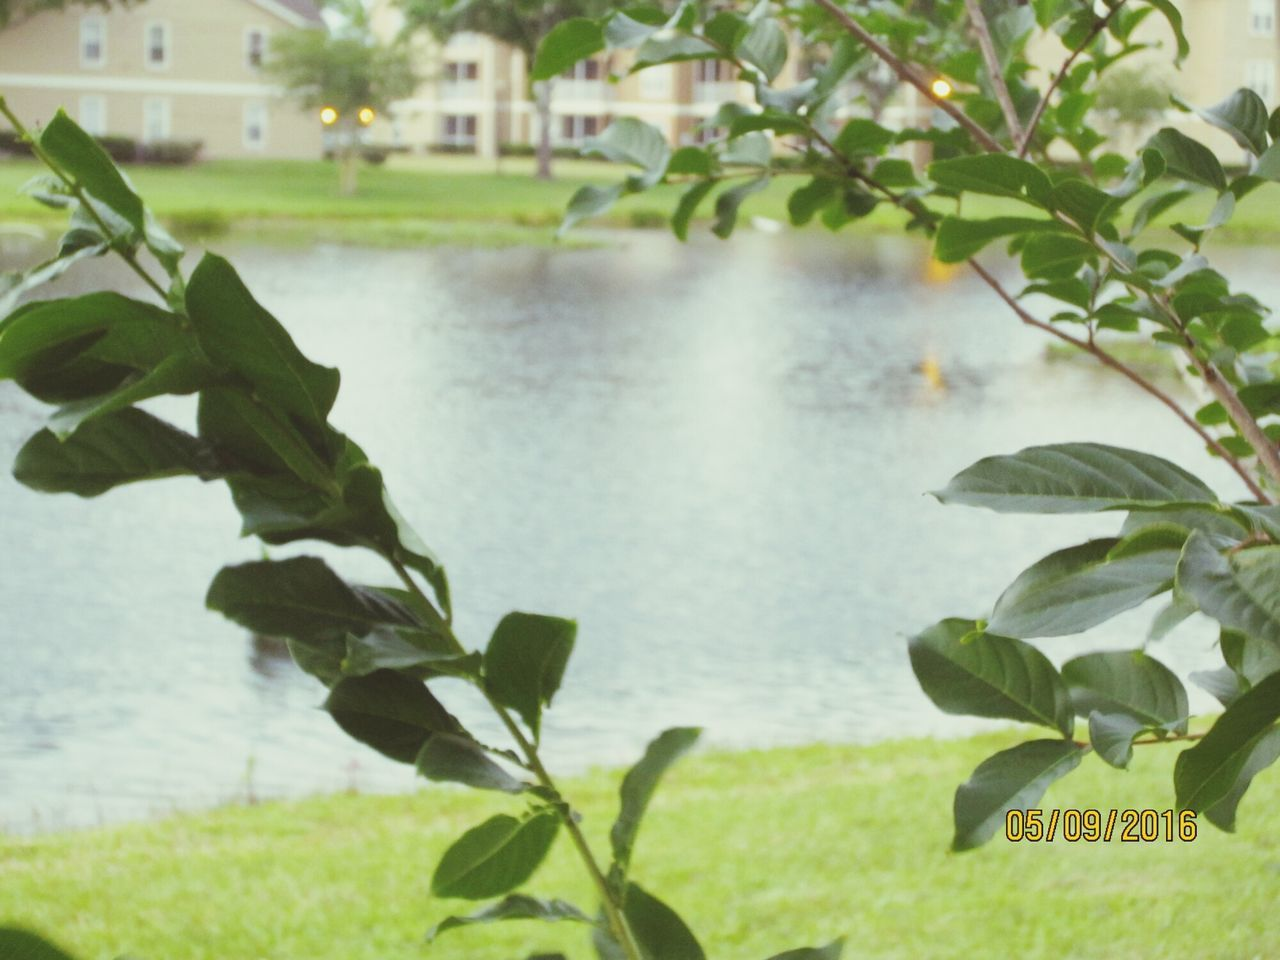 leaf, plant, water, nature, growth, beauty in nature, green color, no people, focus on foreground, day, outdoors, scenics, foreground, grass, tree, close-up, freshness, sky